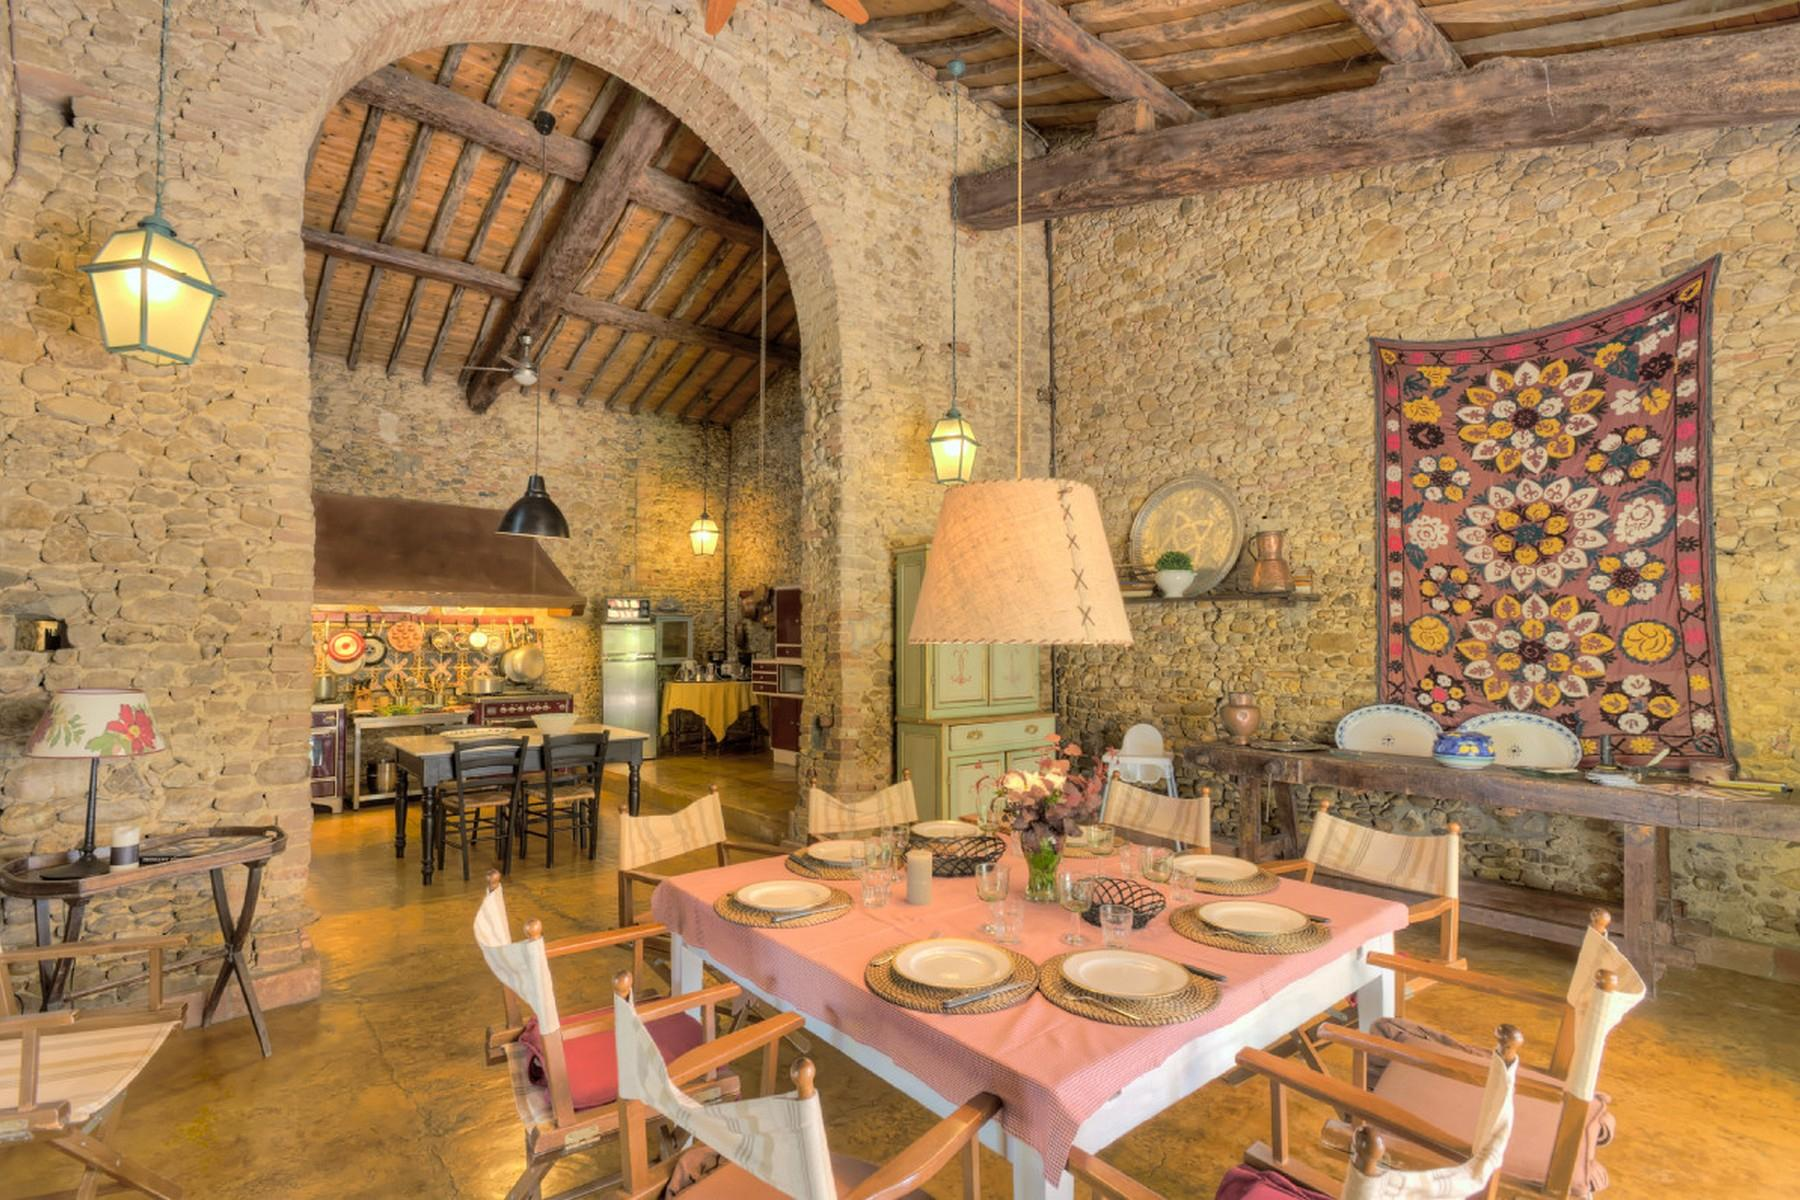 State-of-the-art rustic villa set in Florentine Chianti - 5